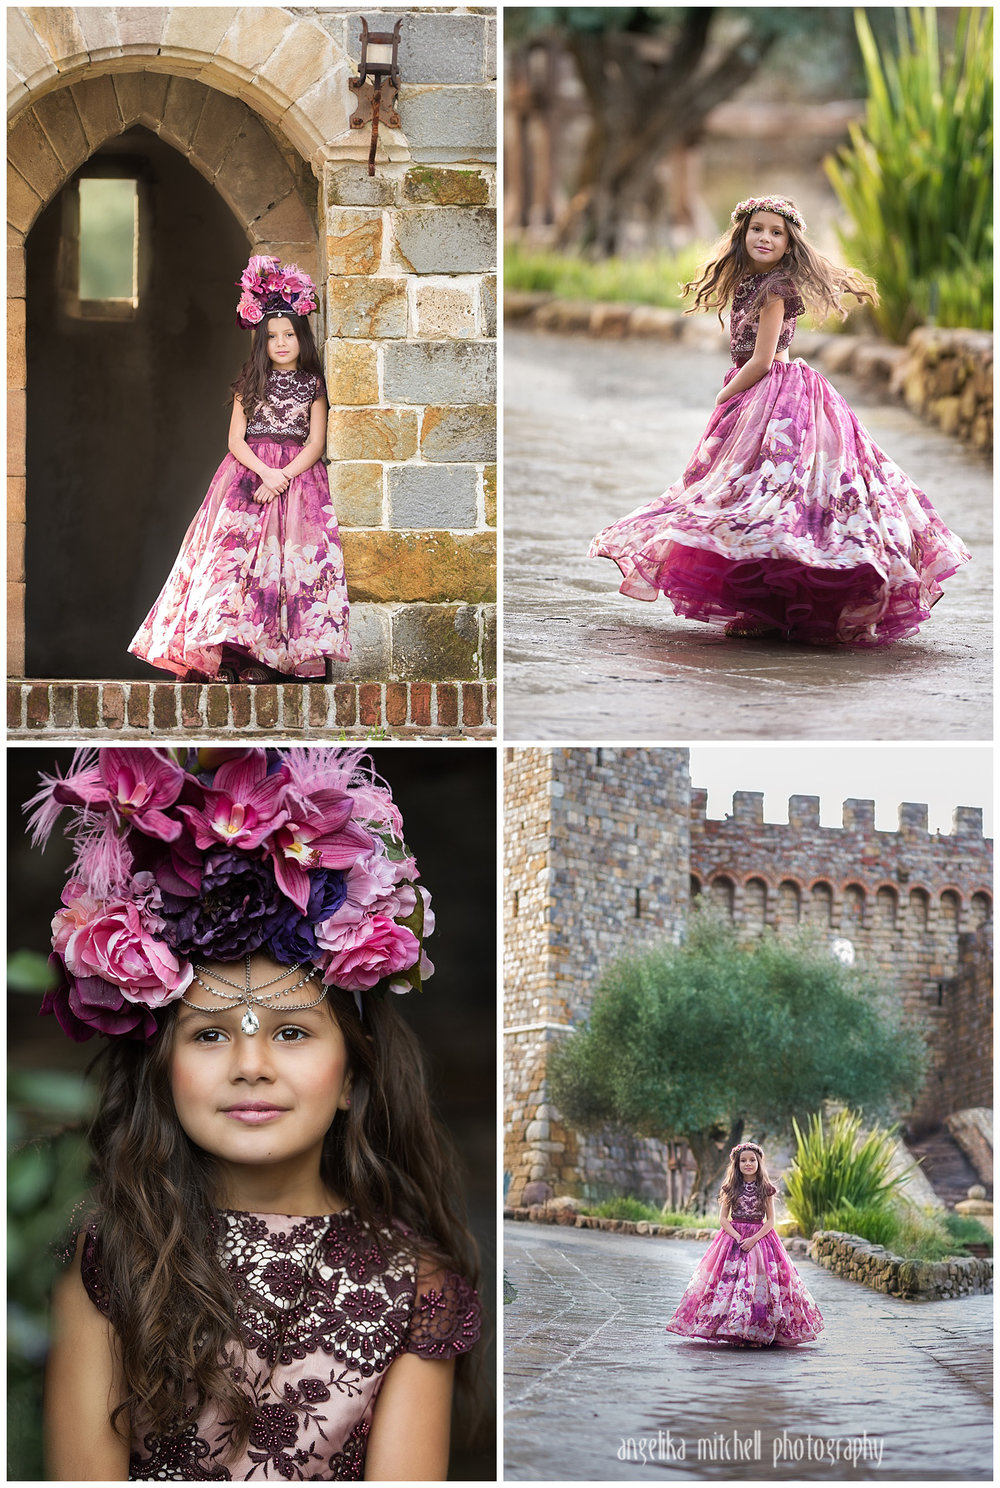 Princess Session Angelika Mitchell Photography Sonoma County California